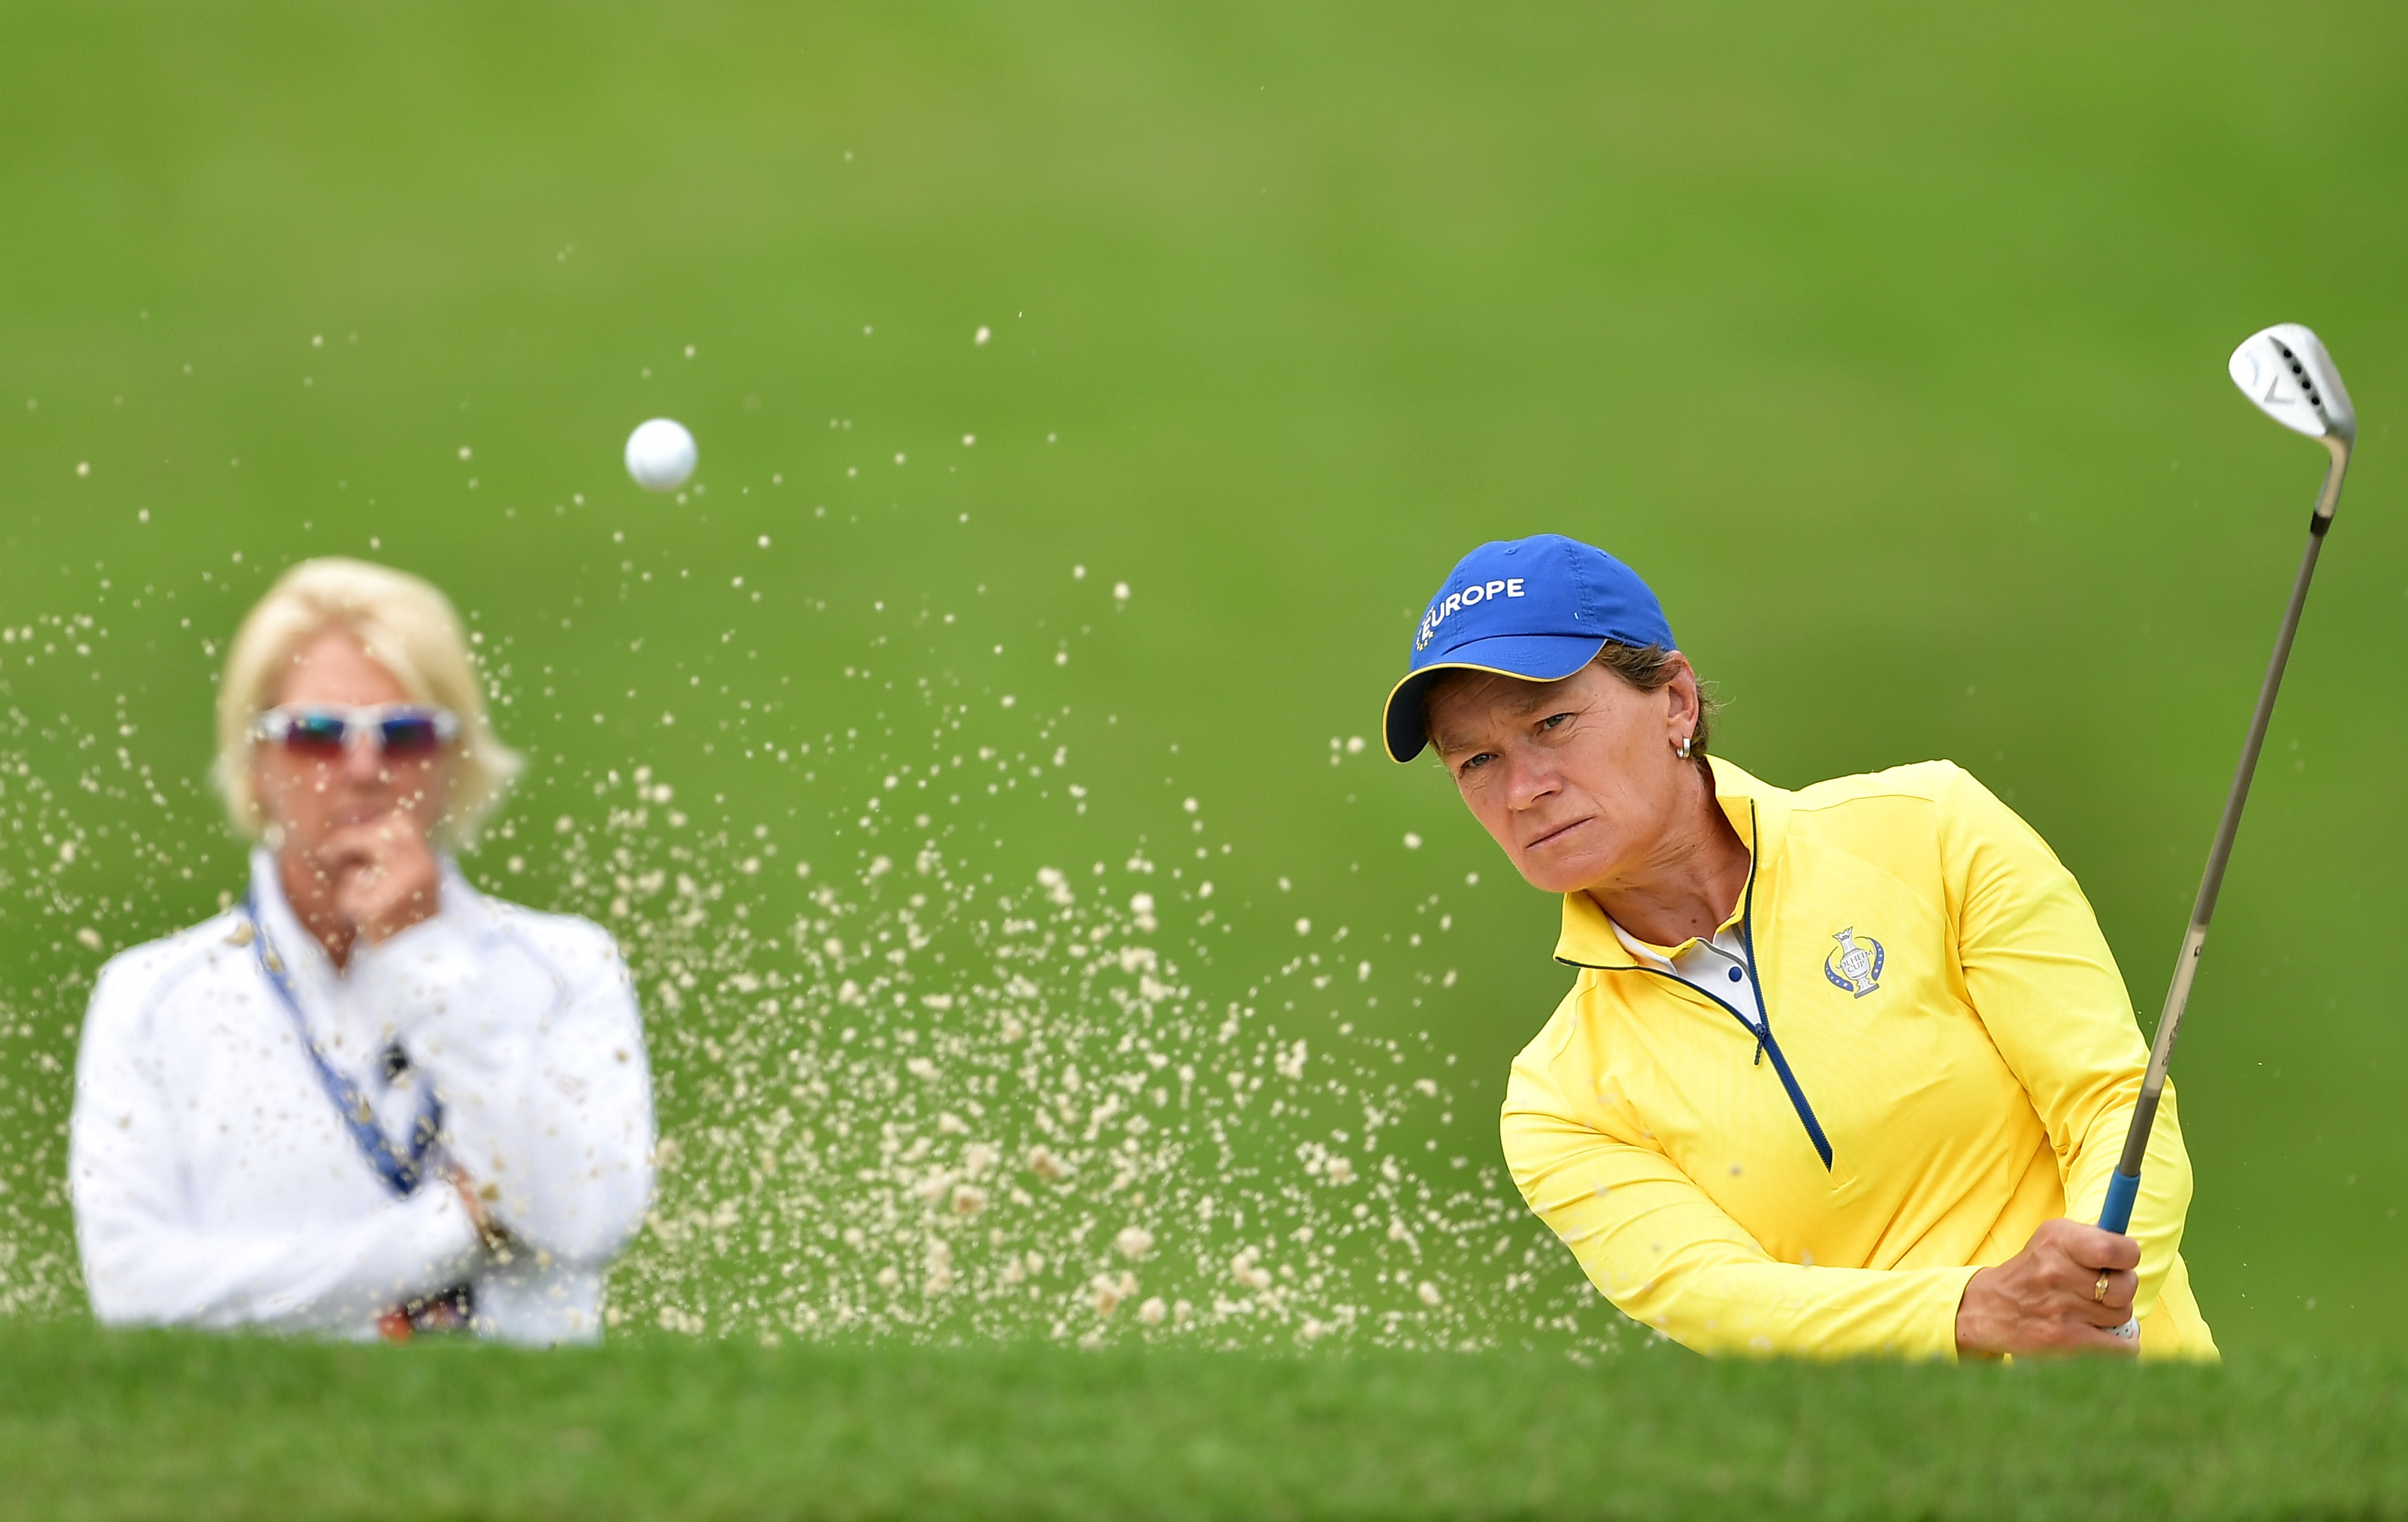 Kathryn Imrie keeping a close watch on her friend Catriona Matthew during practice for the Solheim Cup at the Des Moines Country Club.